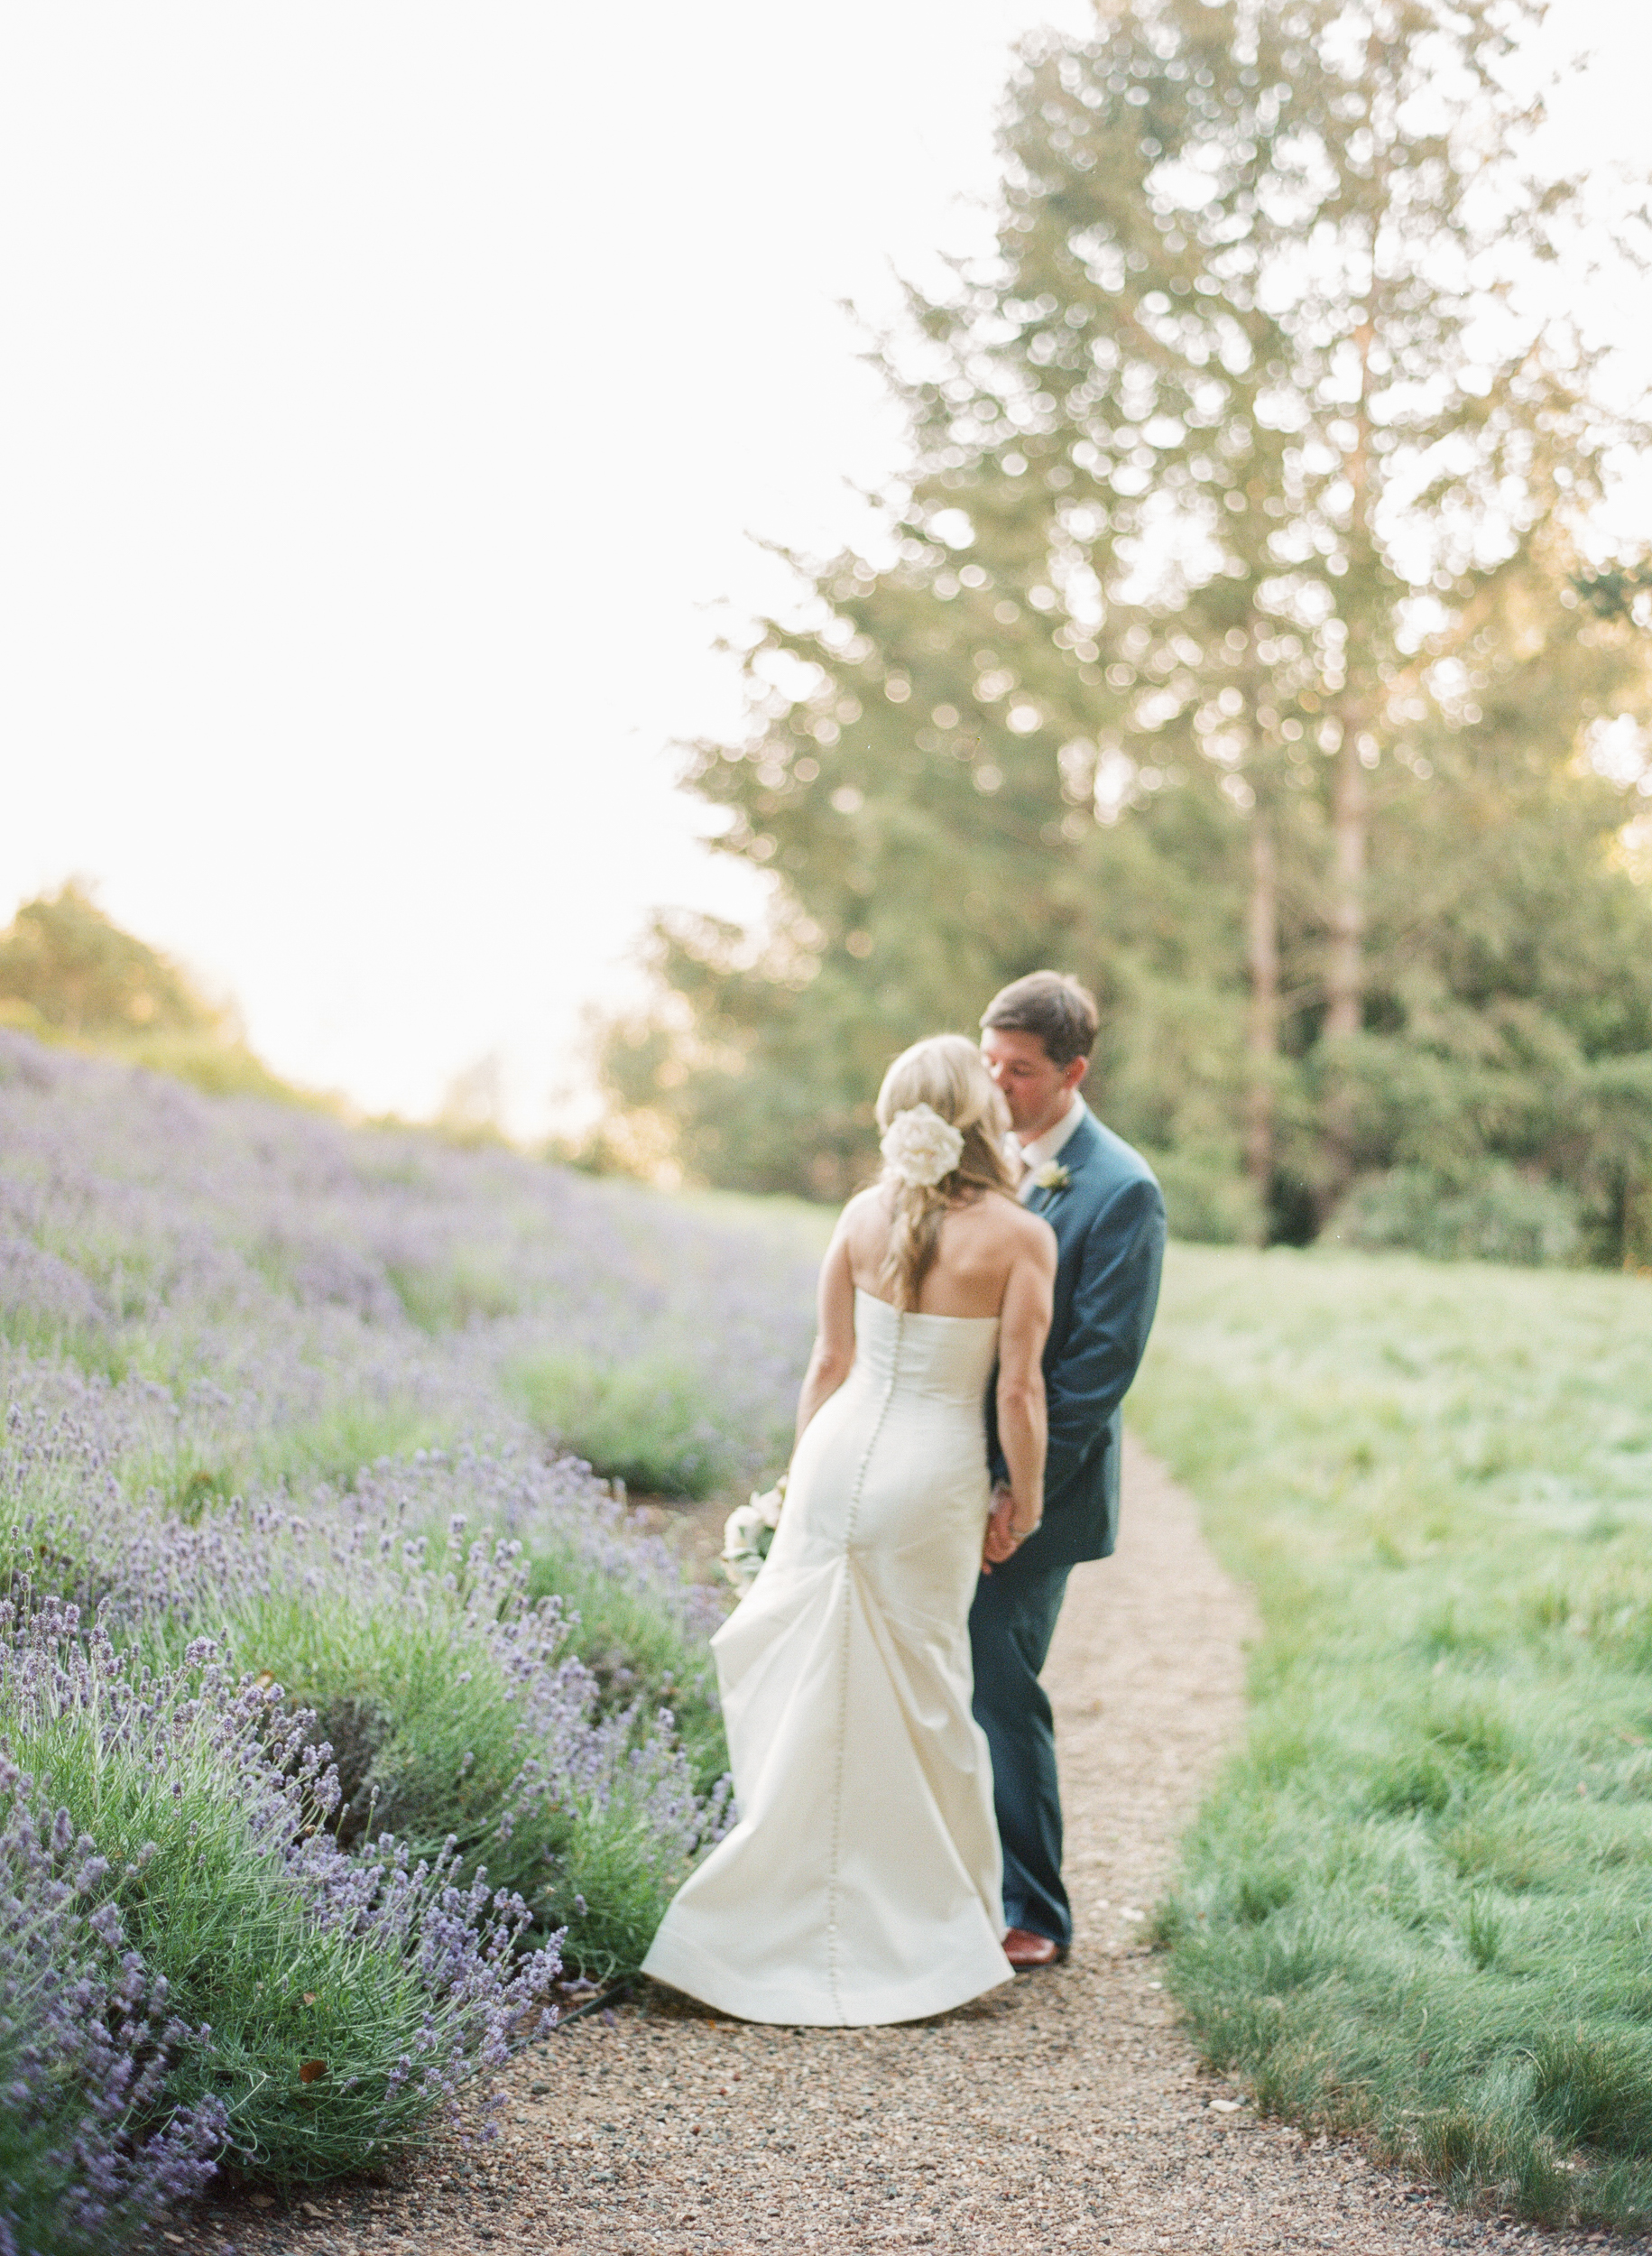 The newly married couple shares a quiet moment next to a field of lavender; photo by Sylvie Gil